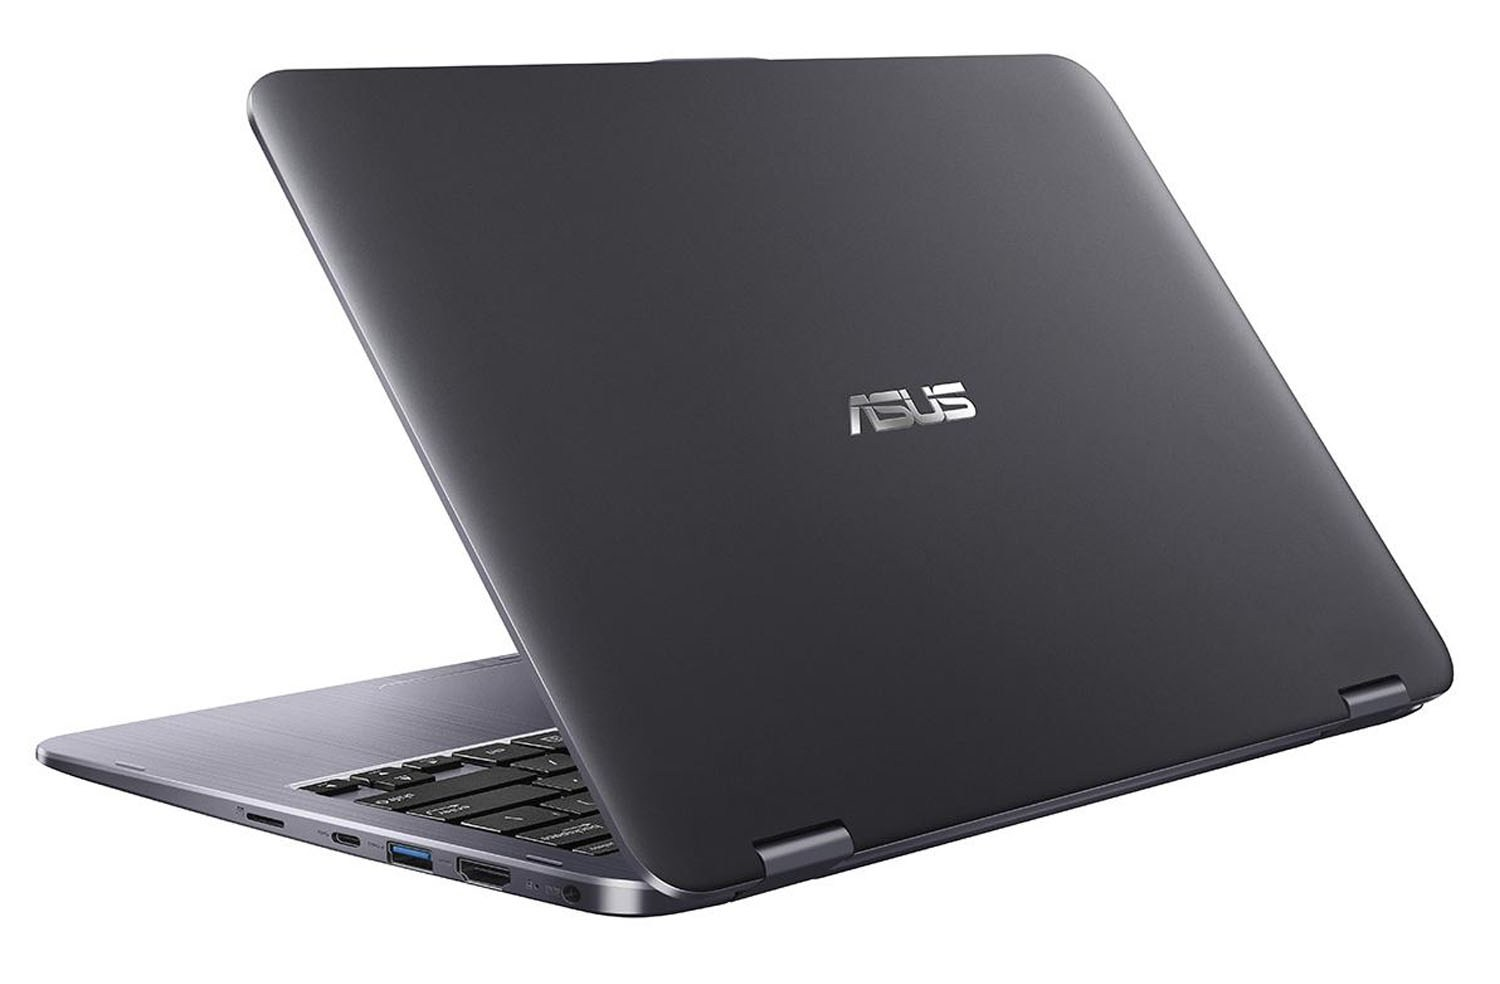 ASUS VIVOBOOK FLIP 12 TP203NAS ATKACPI DRIVERS WINDOWS